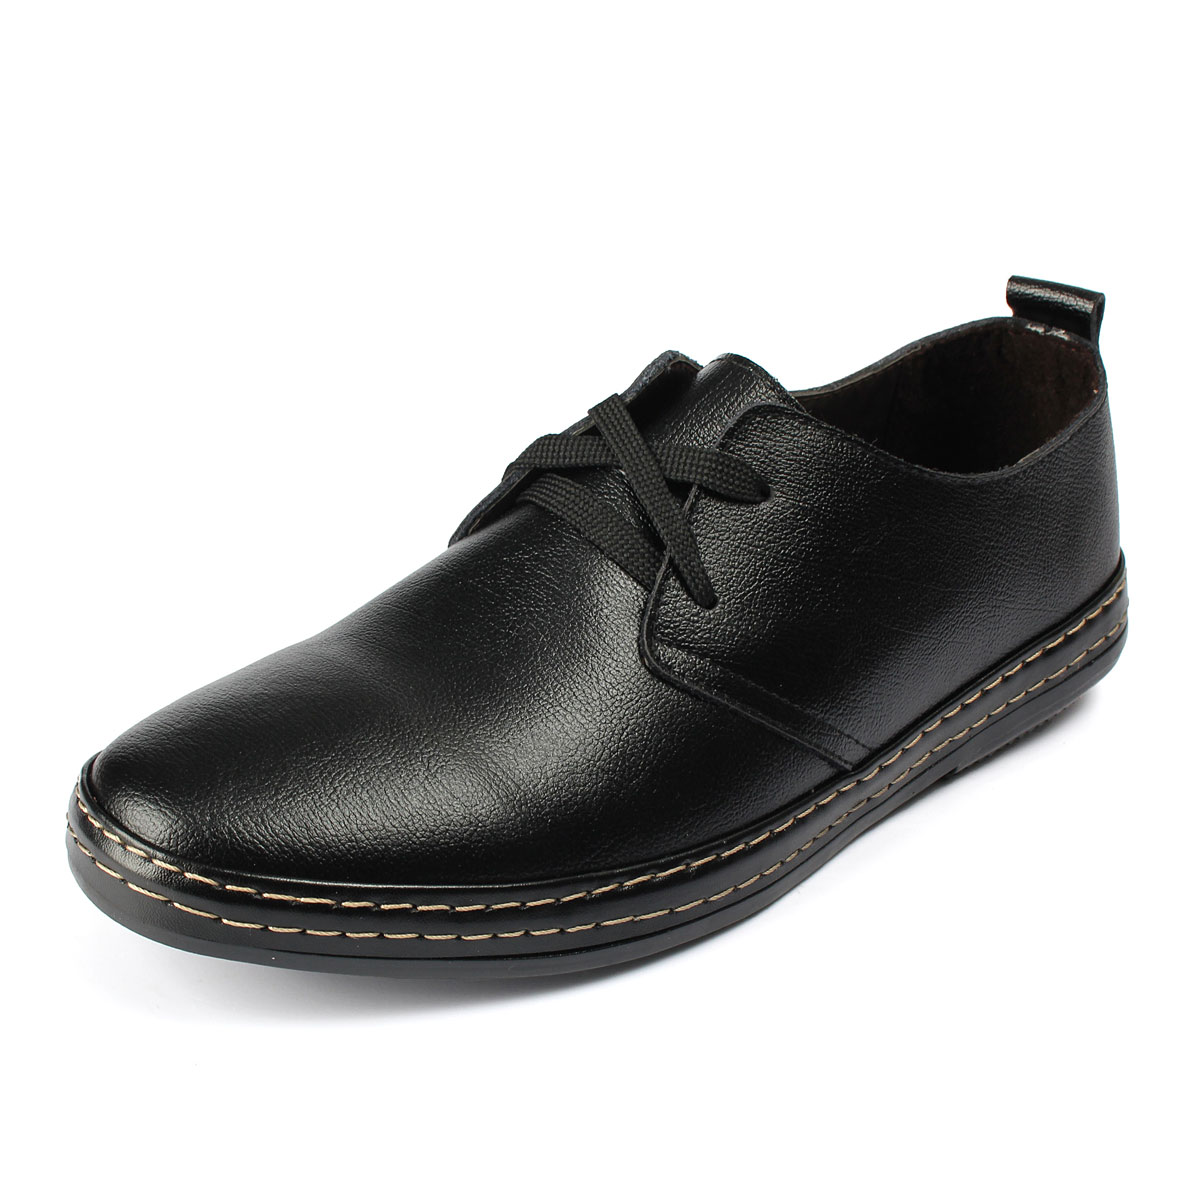 homme chaussure mocassin d contract cuir habill sneakers conduite mariage shoe ebay. Black Bedroom Furniture Sets. Home Design Ideas